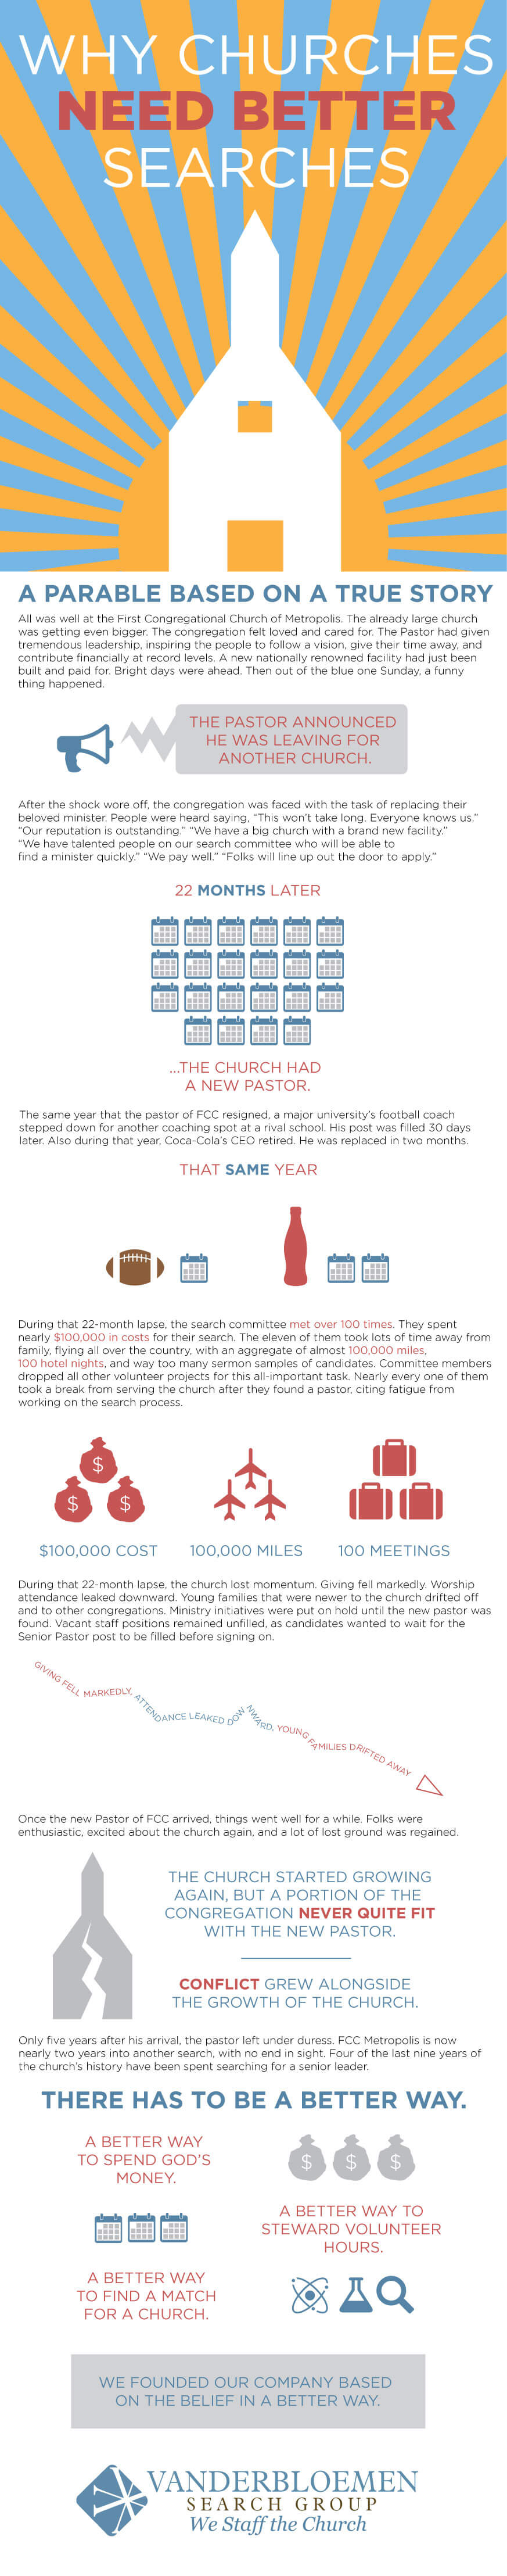 Why-Churches-Need-Better-Pastor-Searches-Blog-Image-2